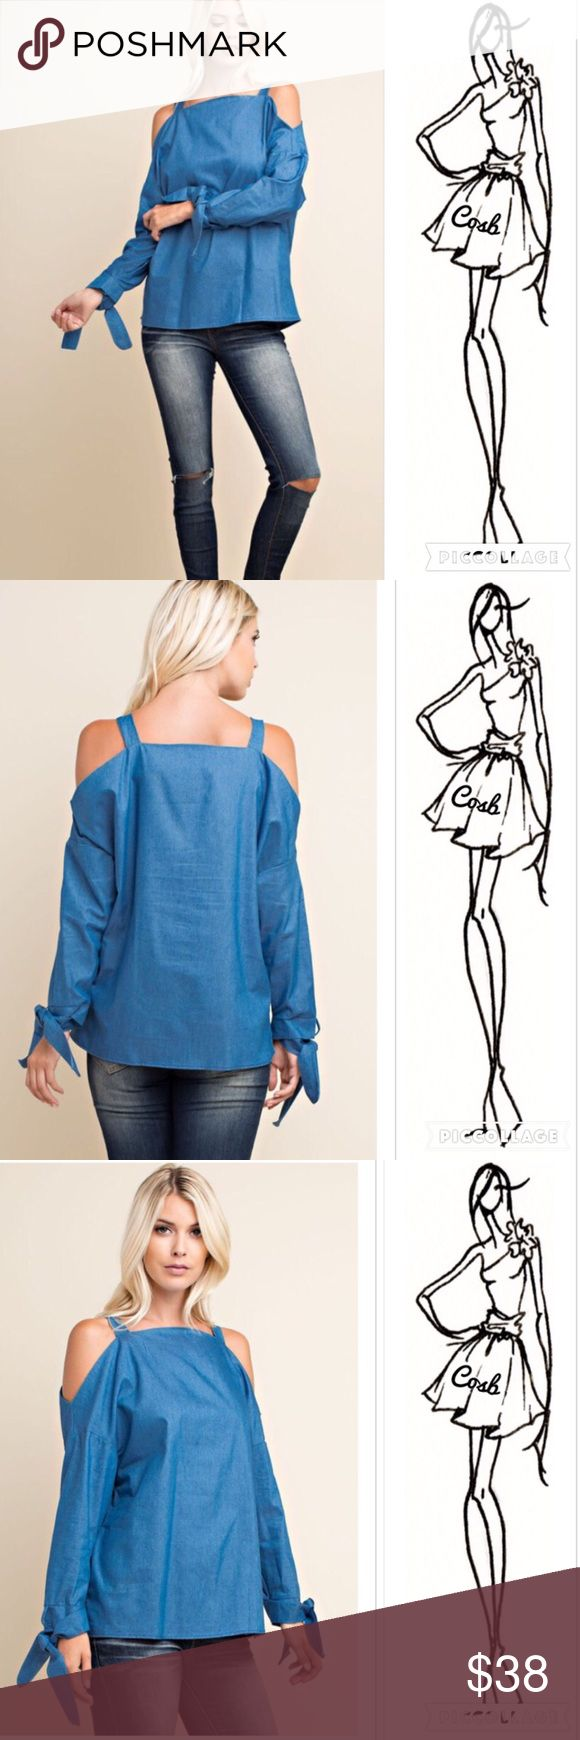 Fall Denim Long Sleeve Top w/Ties Fall denim long sleeve top. Top has cold shoulders & long sleeves. At the end of sleeves are ties. Top has wider strap @ cold shoulder. Stops @ hips. ✨ Price firm unless bundled Cosb Tops